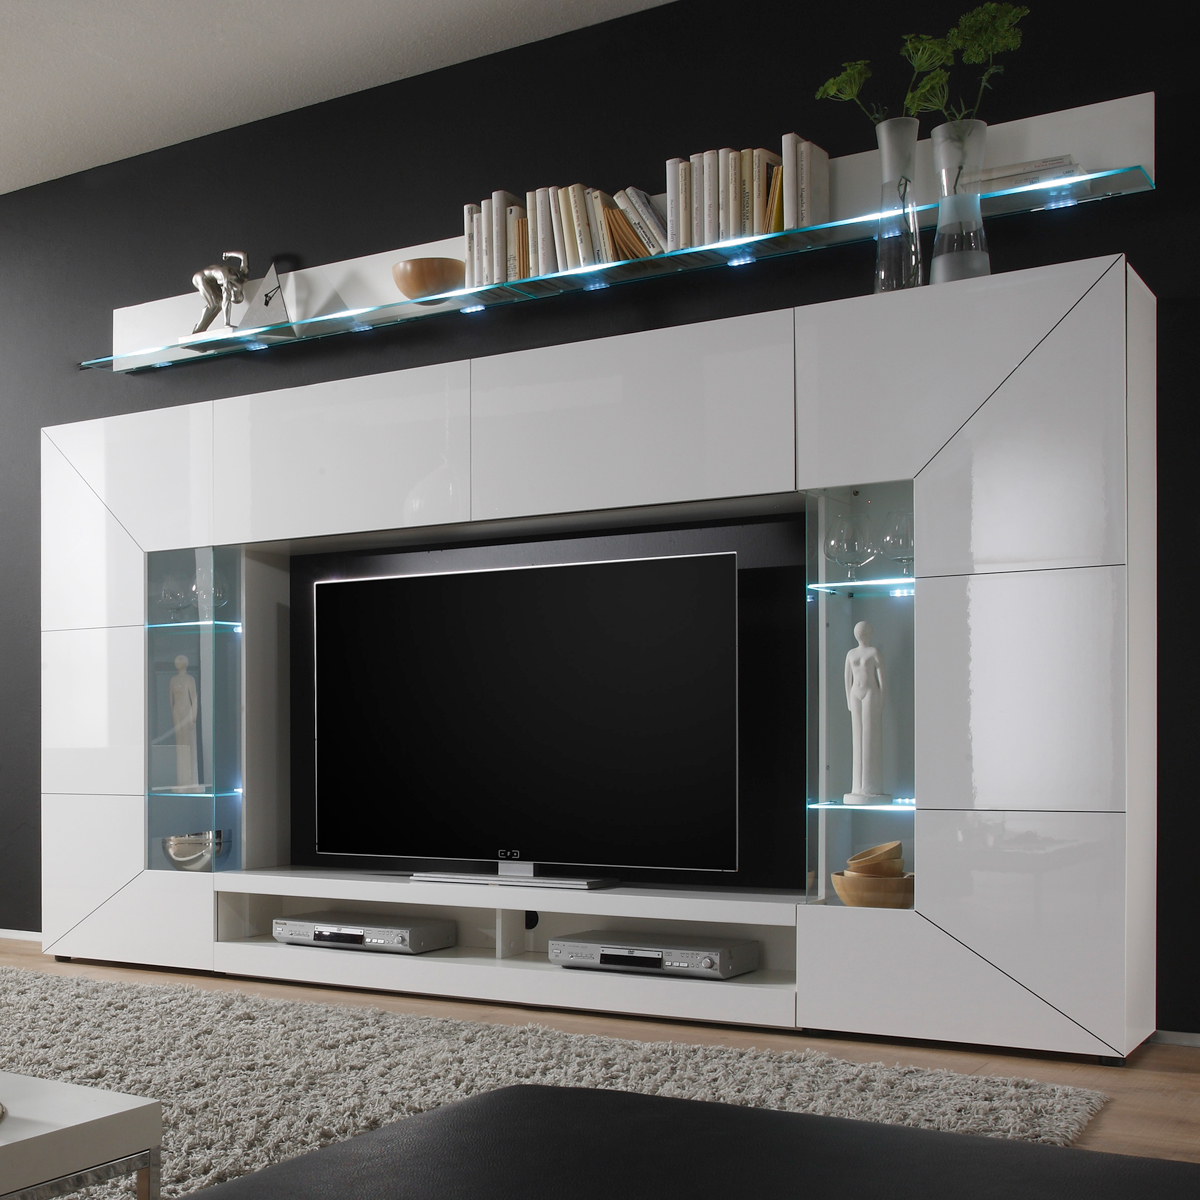 wohnwand mediawand 2e wei hochglanz mit tv lowboard 2 vitrinen 2 wandboards ebay. Black Bedroom Furniture Sets. Home Design Ideas